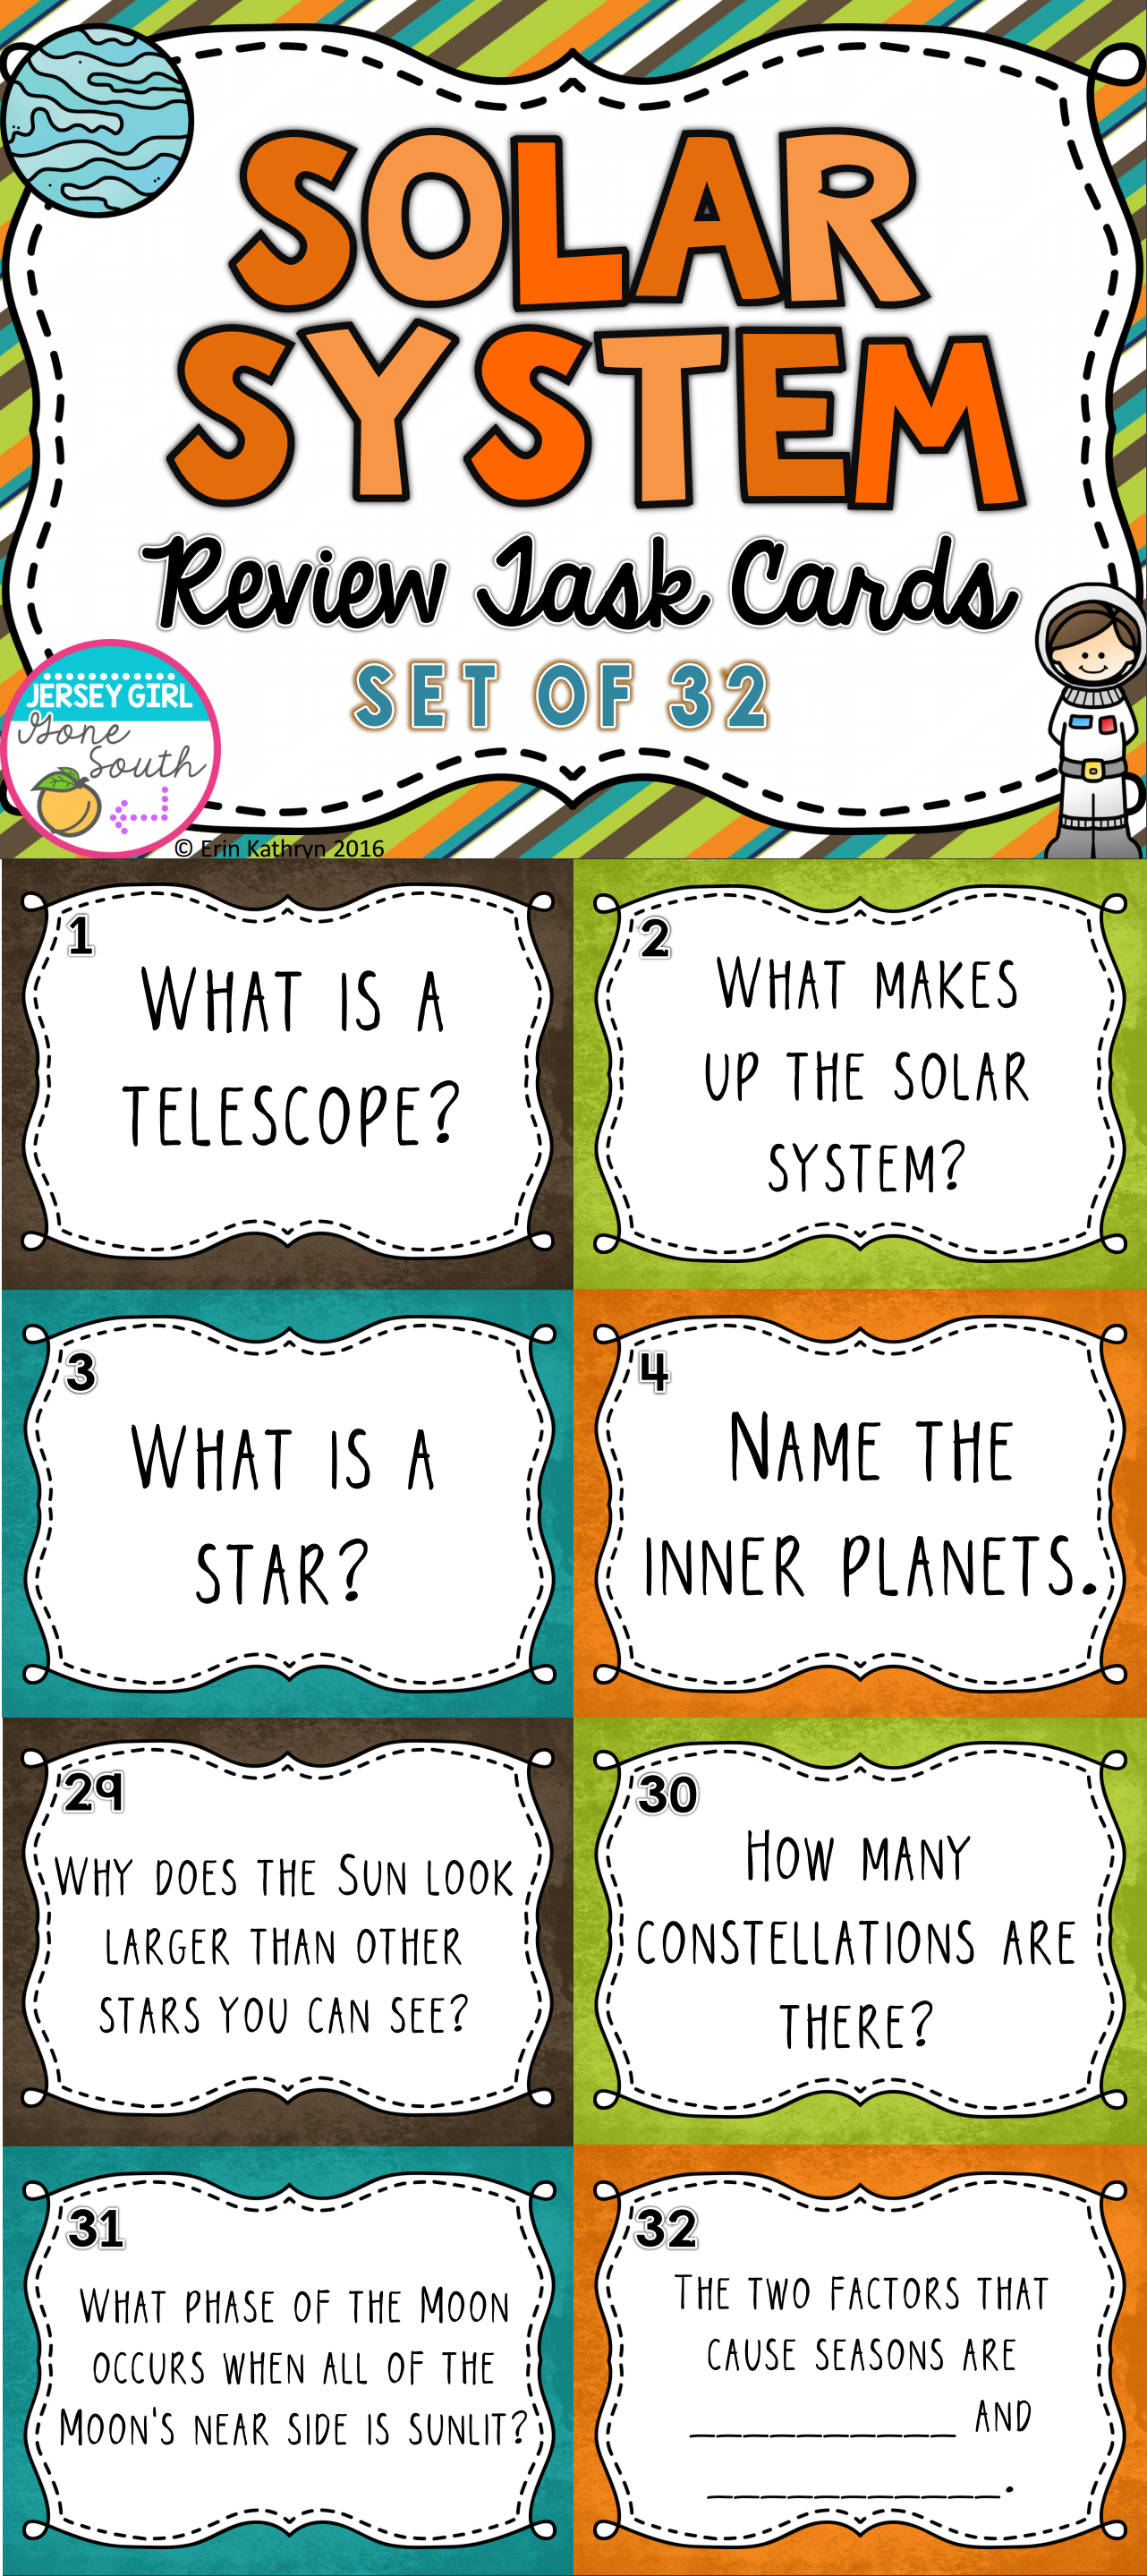 Solar System Review Task Cards